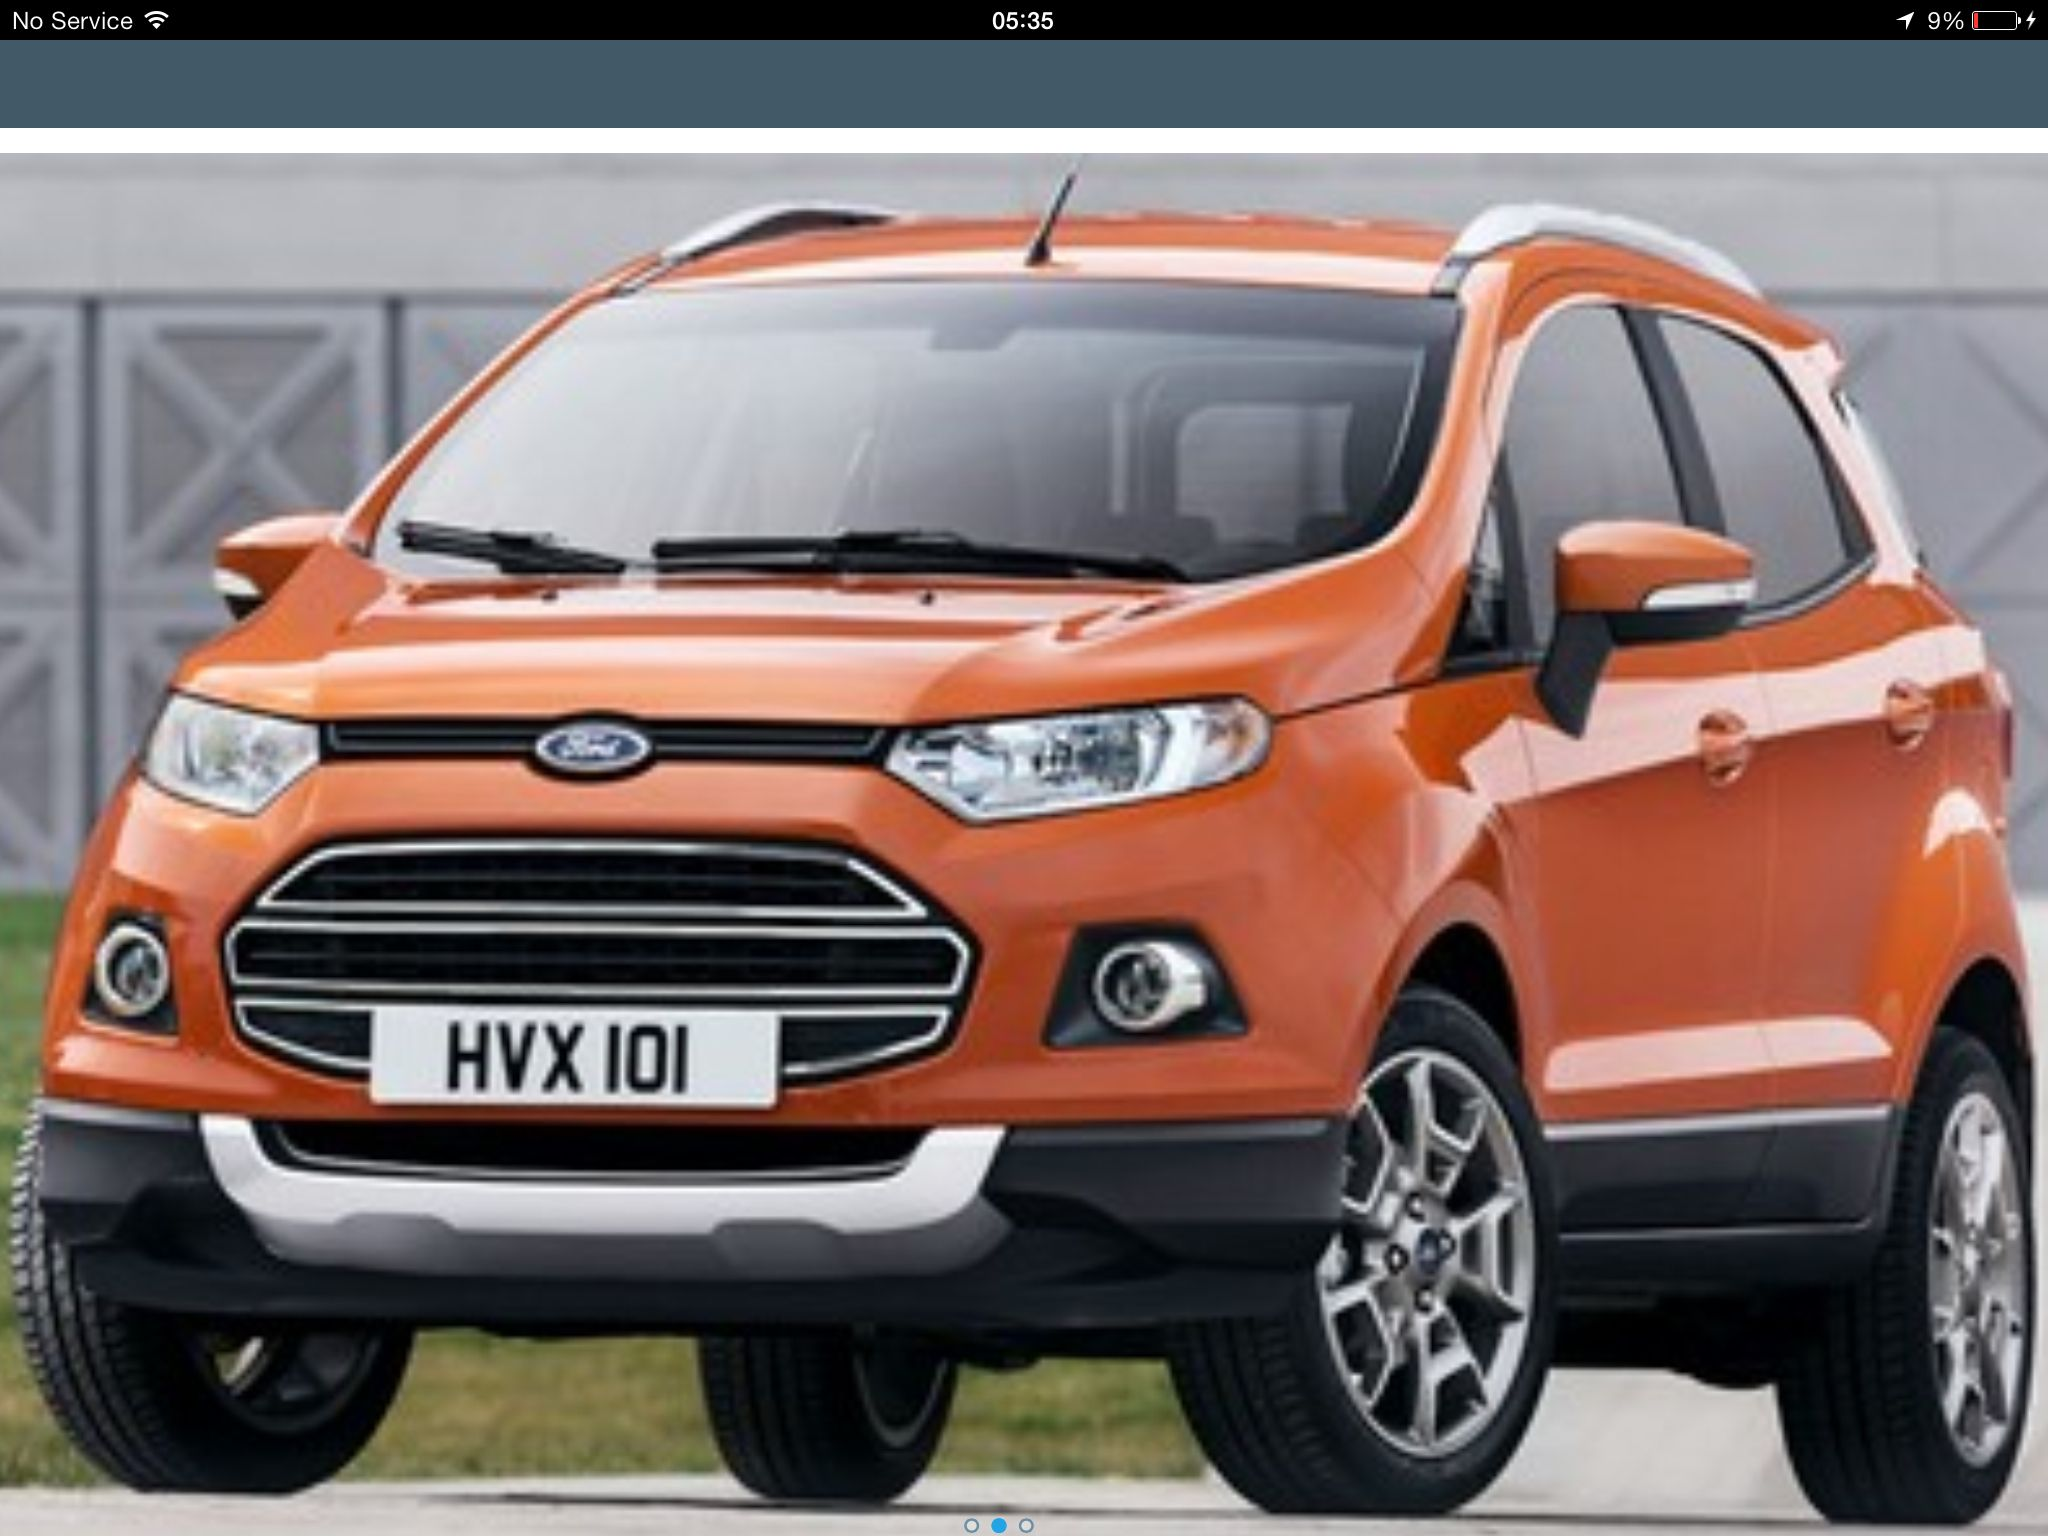 The New Baby Kuga Based On A Fiesta Ford Ecosport Suv Ford